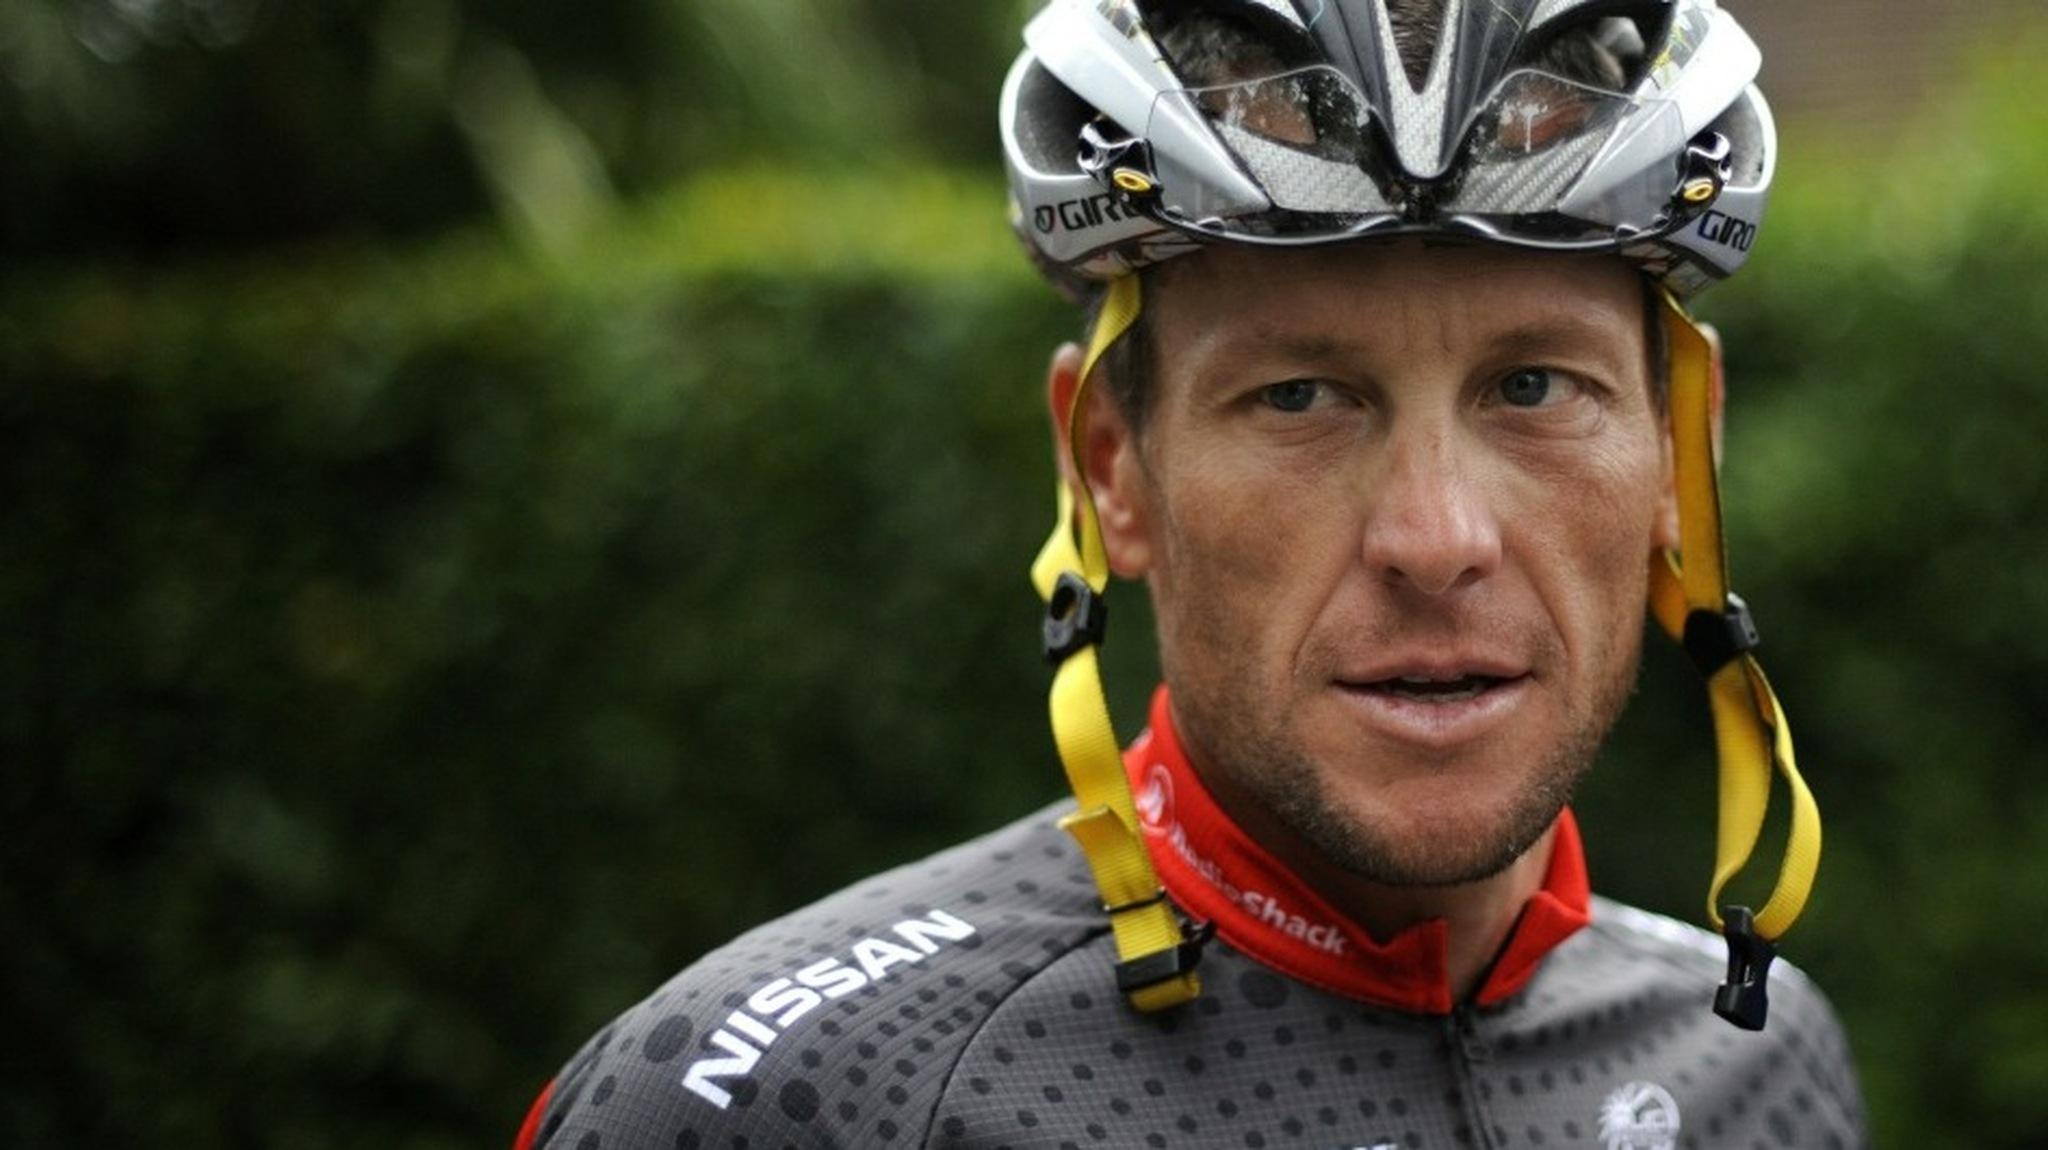 Lance Armstrong arrives at a training session during a rest day of the